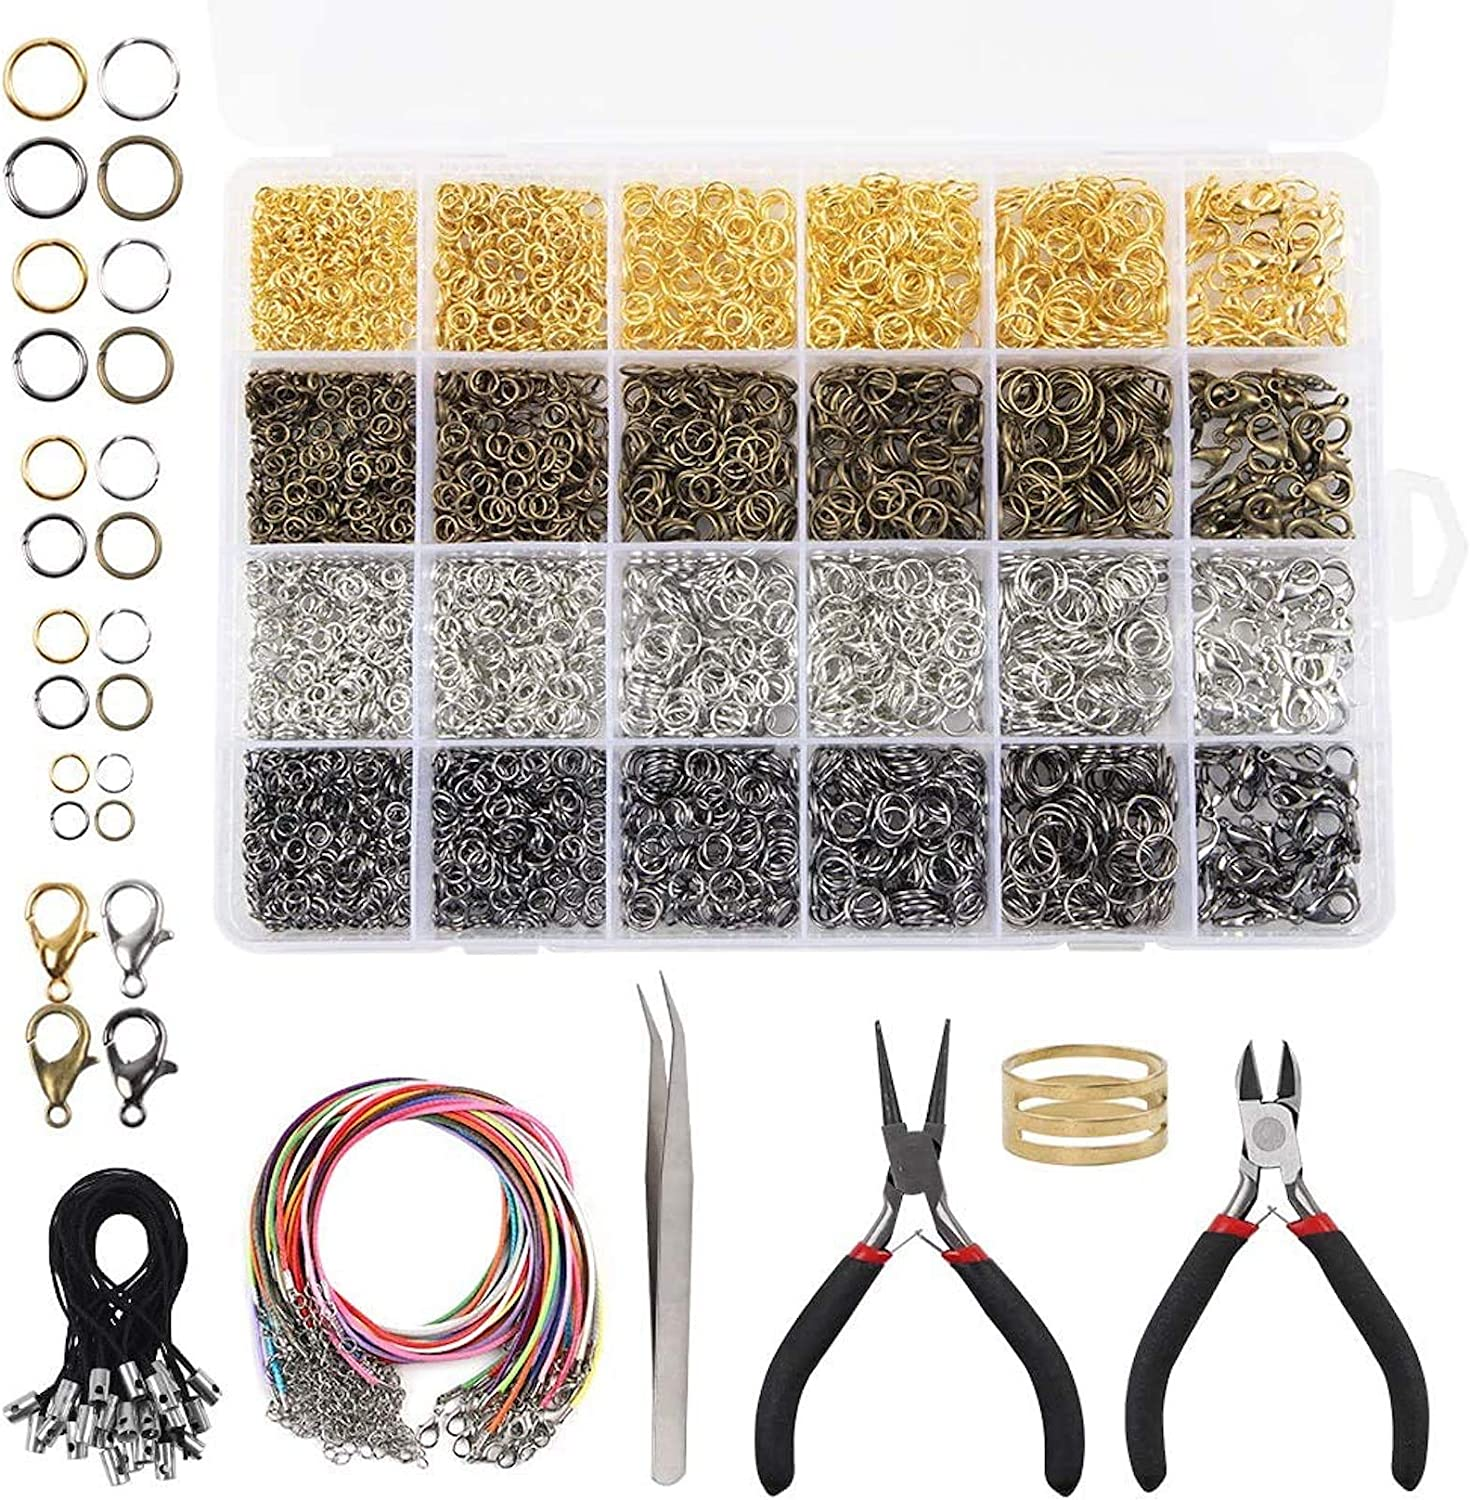 2 Colors 600 Pieces Lobster Clasps and Open Jump Rings Set Jewelry Making Findings Kit for DIY Jewelry Making